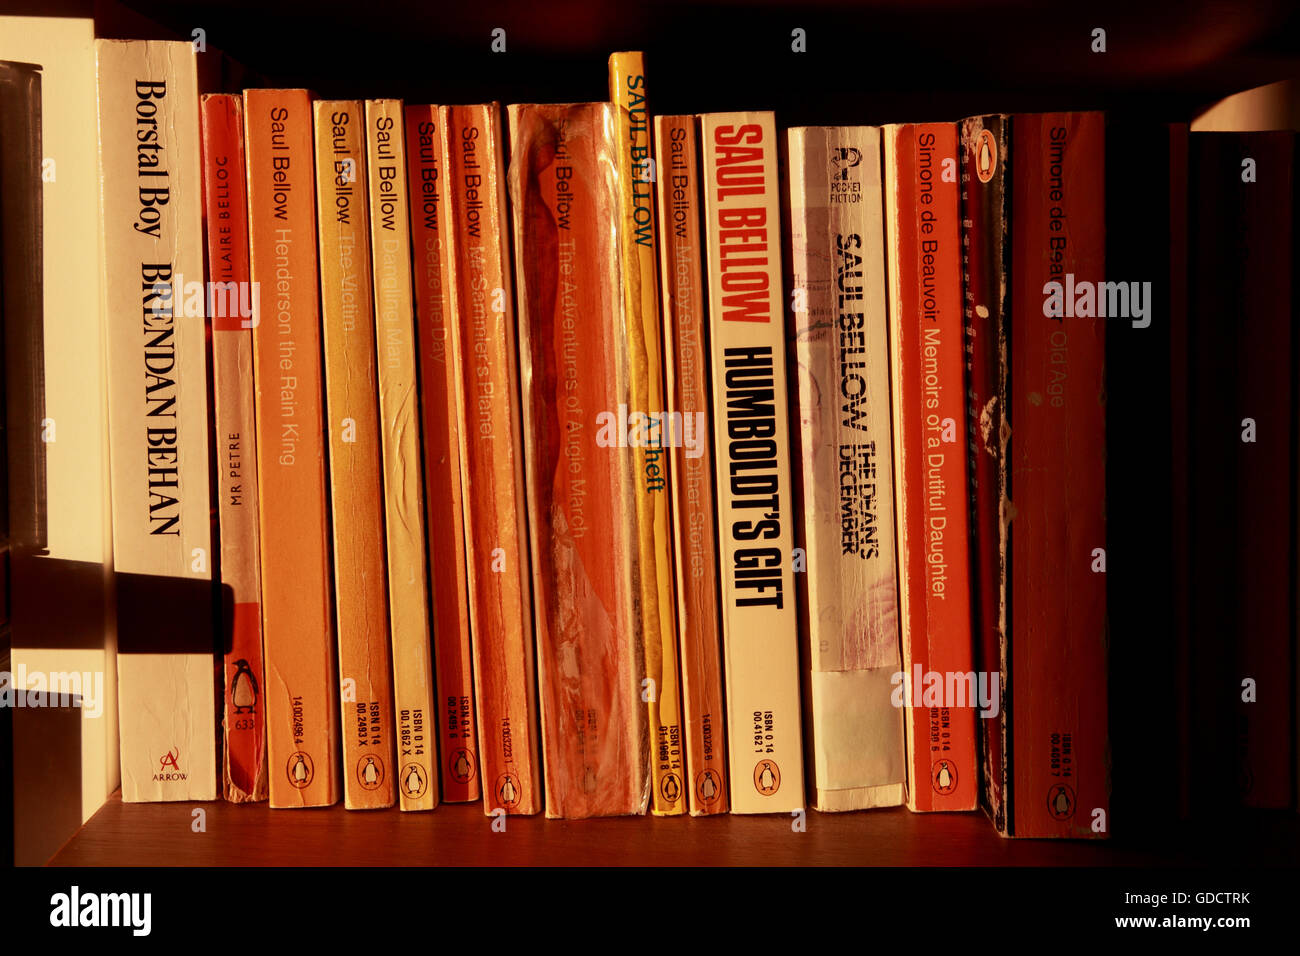 Old paperback books, mainly Penguins, on a bookshelf - Stock Image